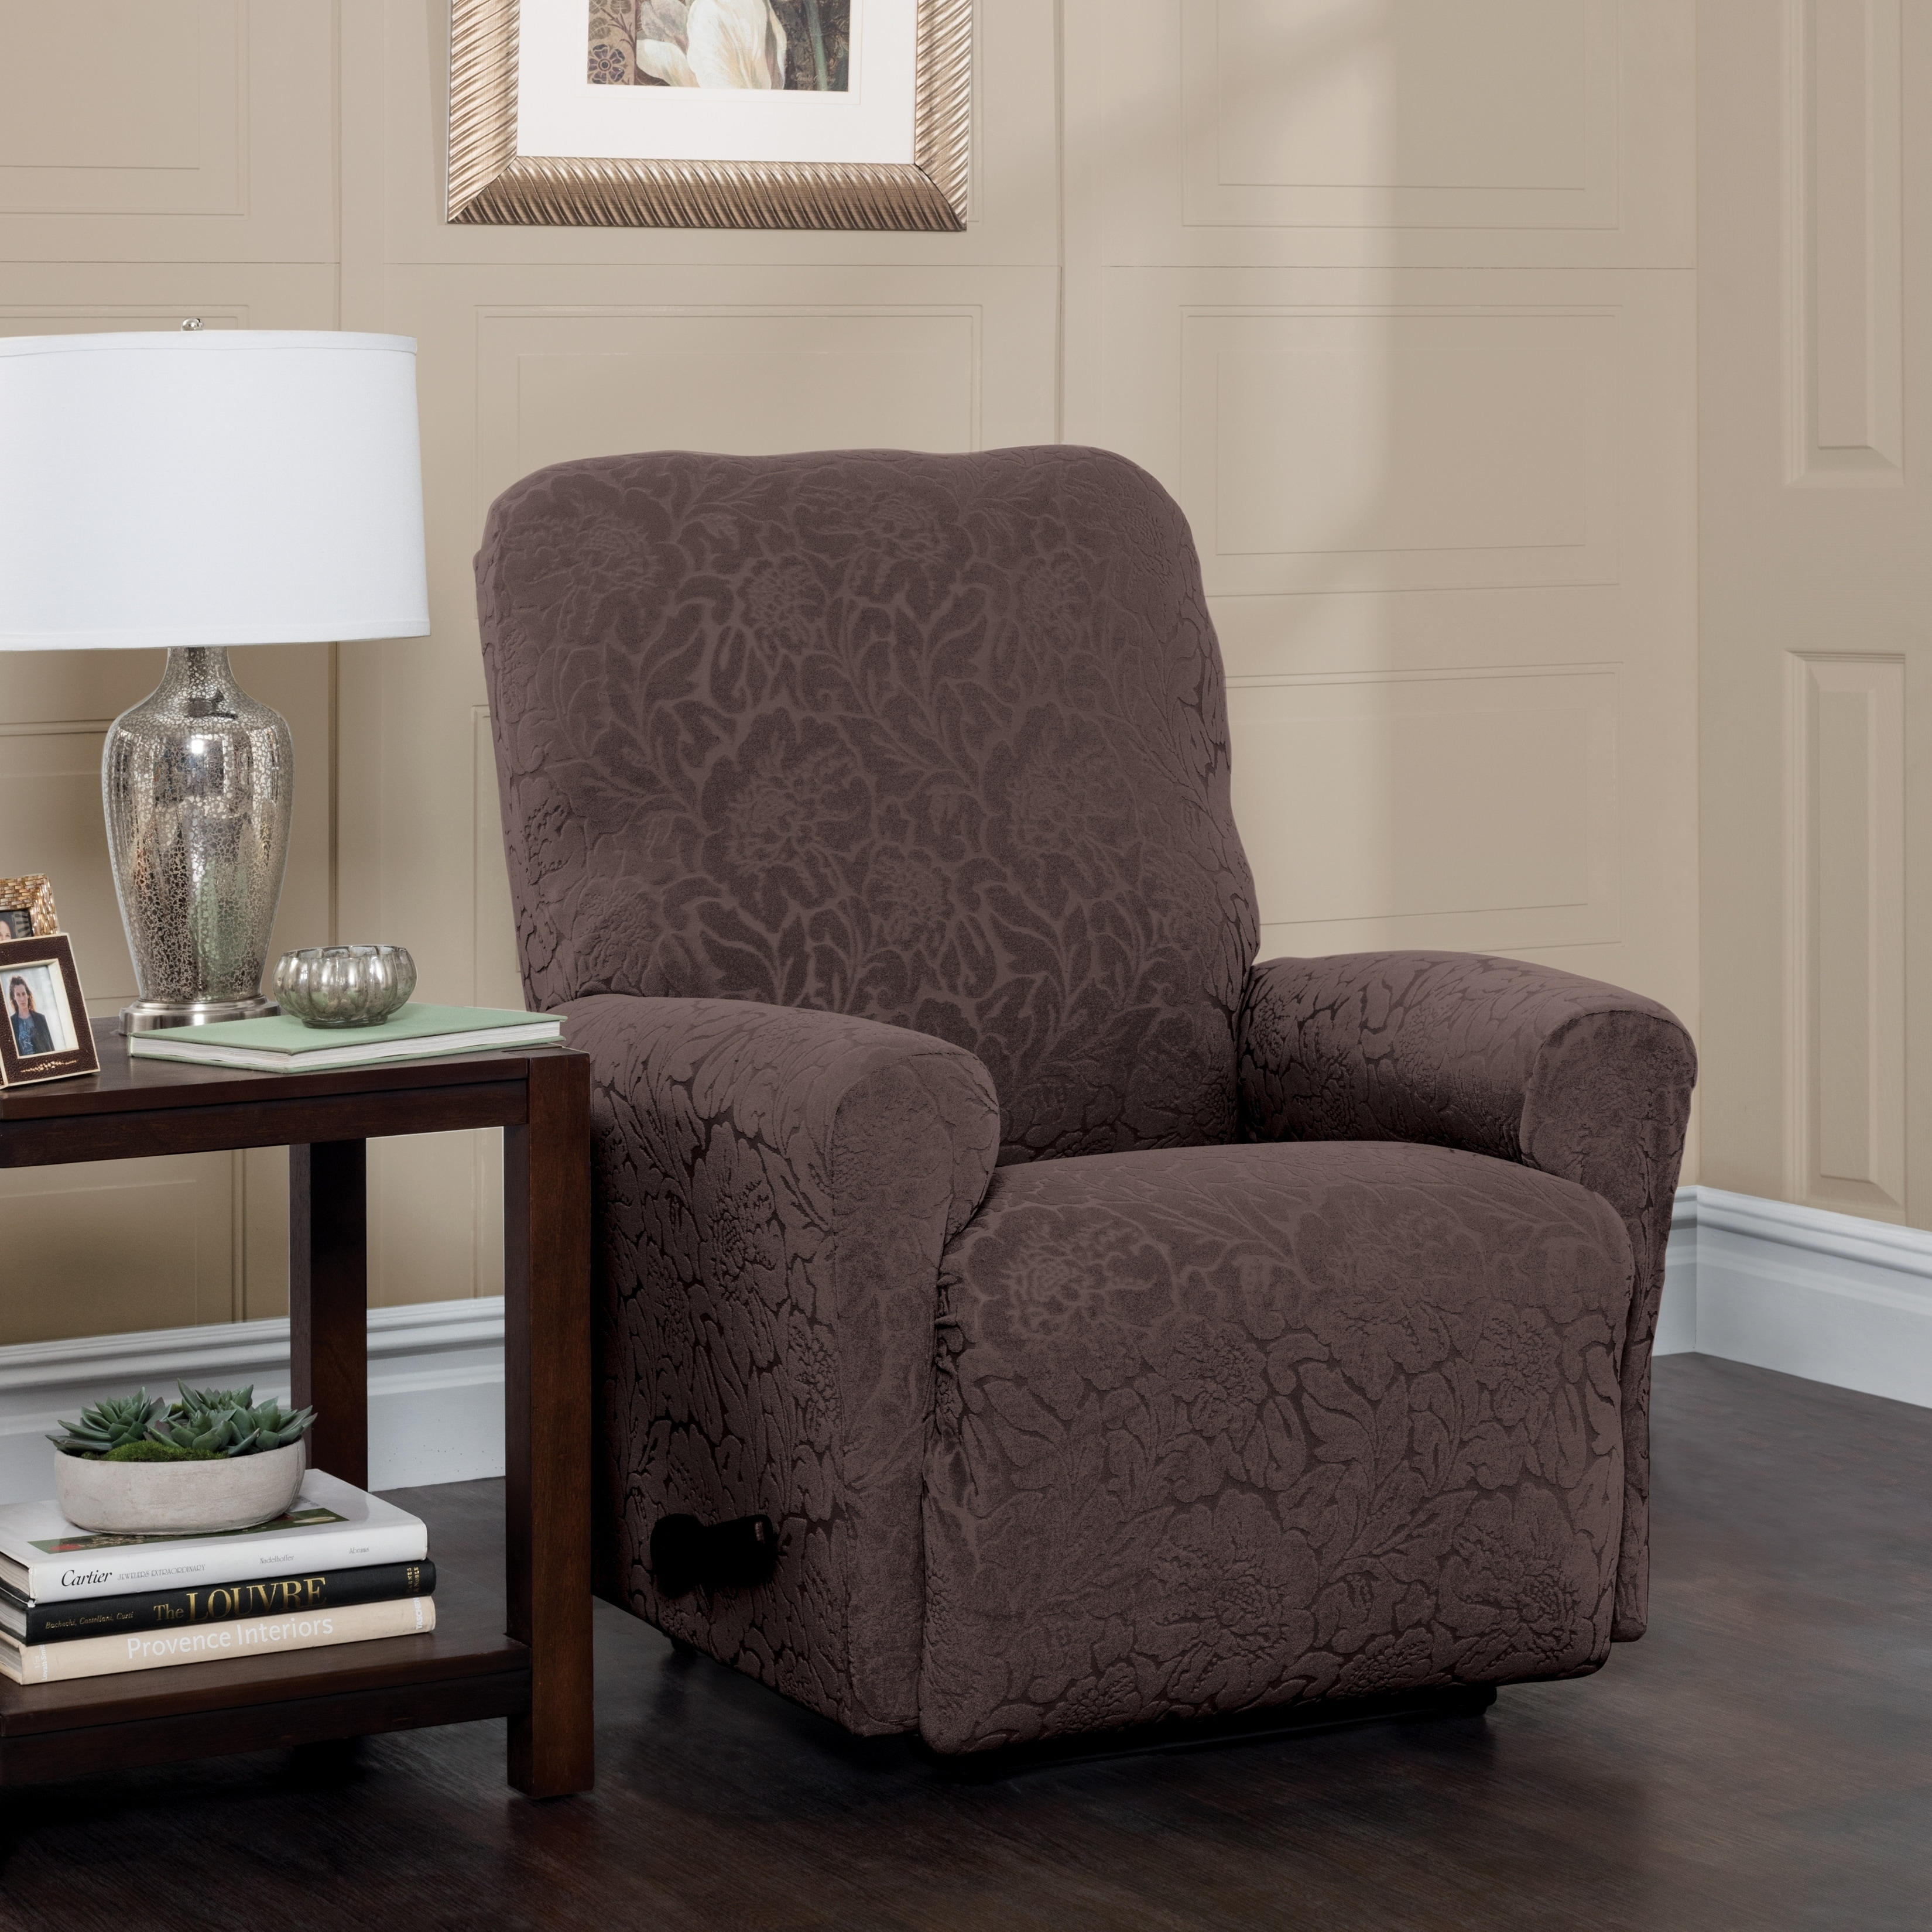 with recliner home redesign covers comfort of wing and image chair the relaxation